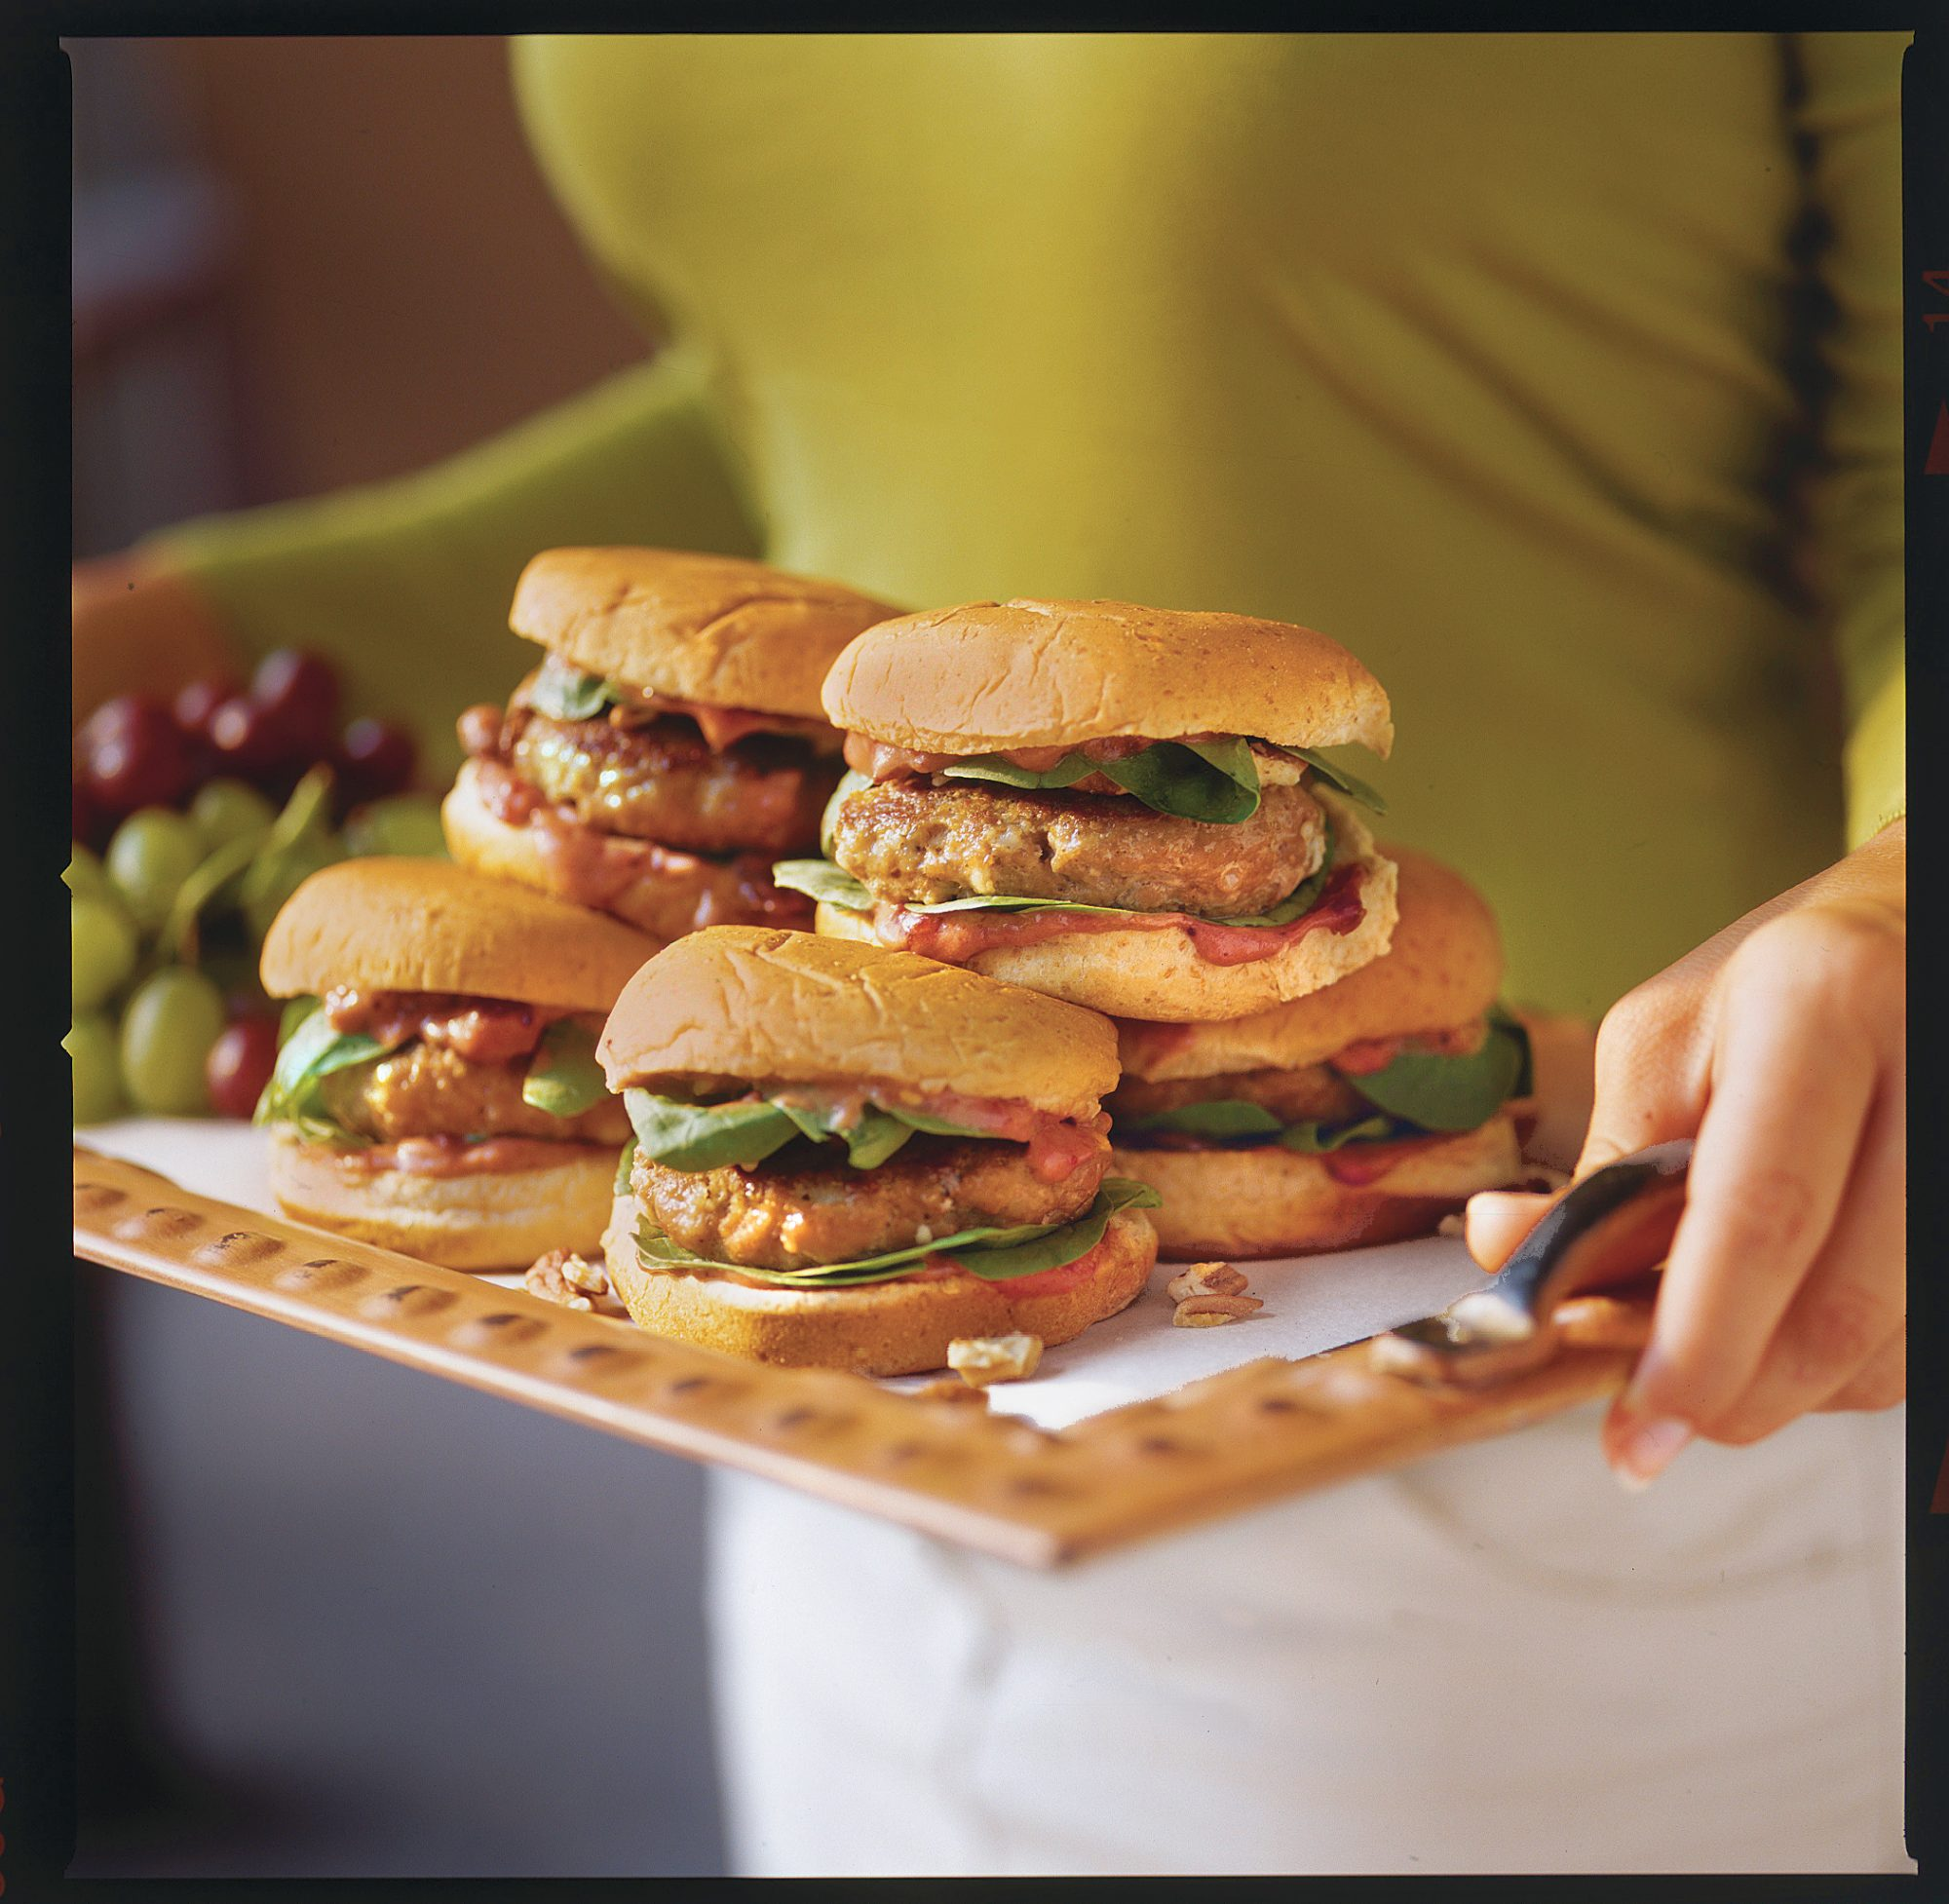 Easy Turkey Recipes: Toasted Pecan, Cranberry, and Gorgonzola Turkey Burgers